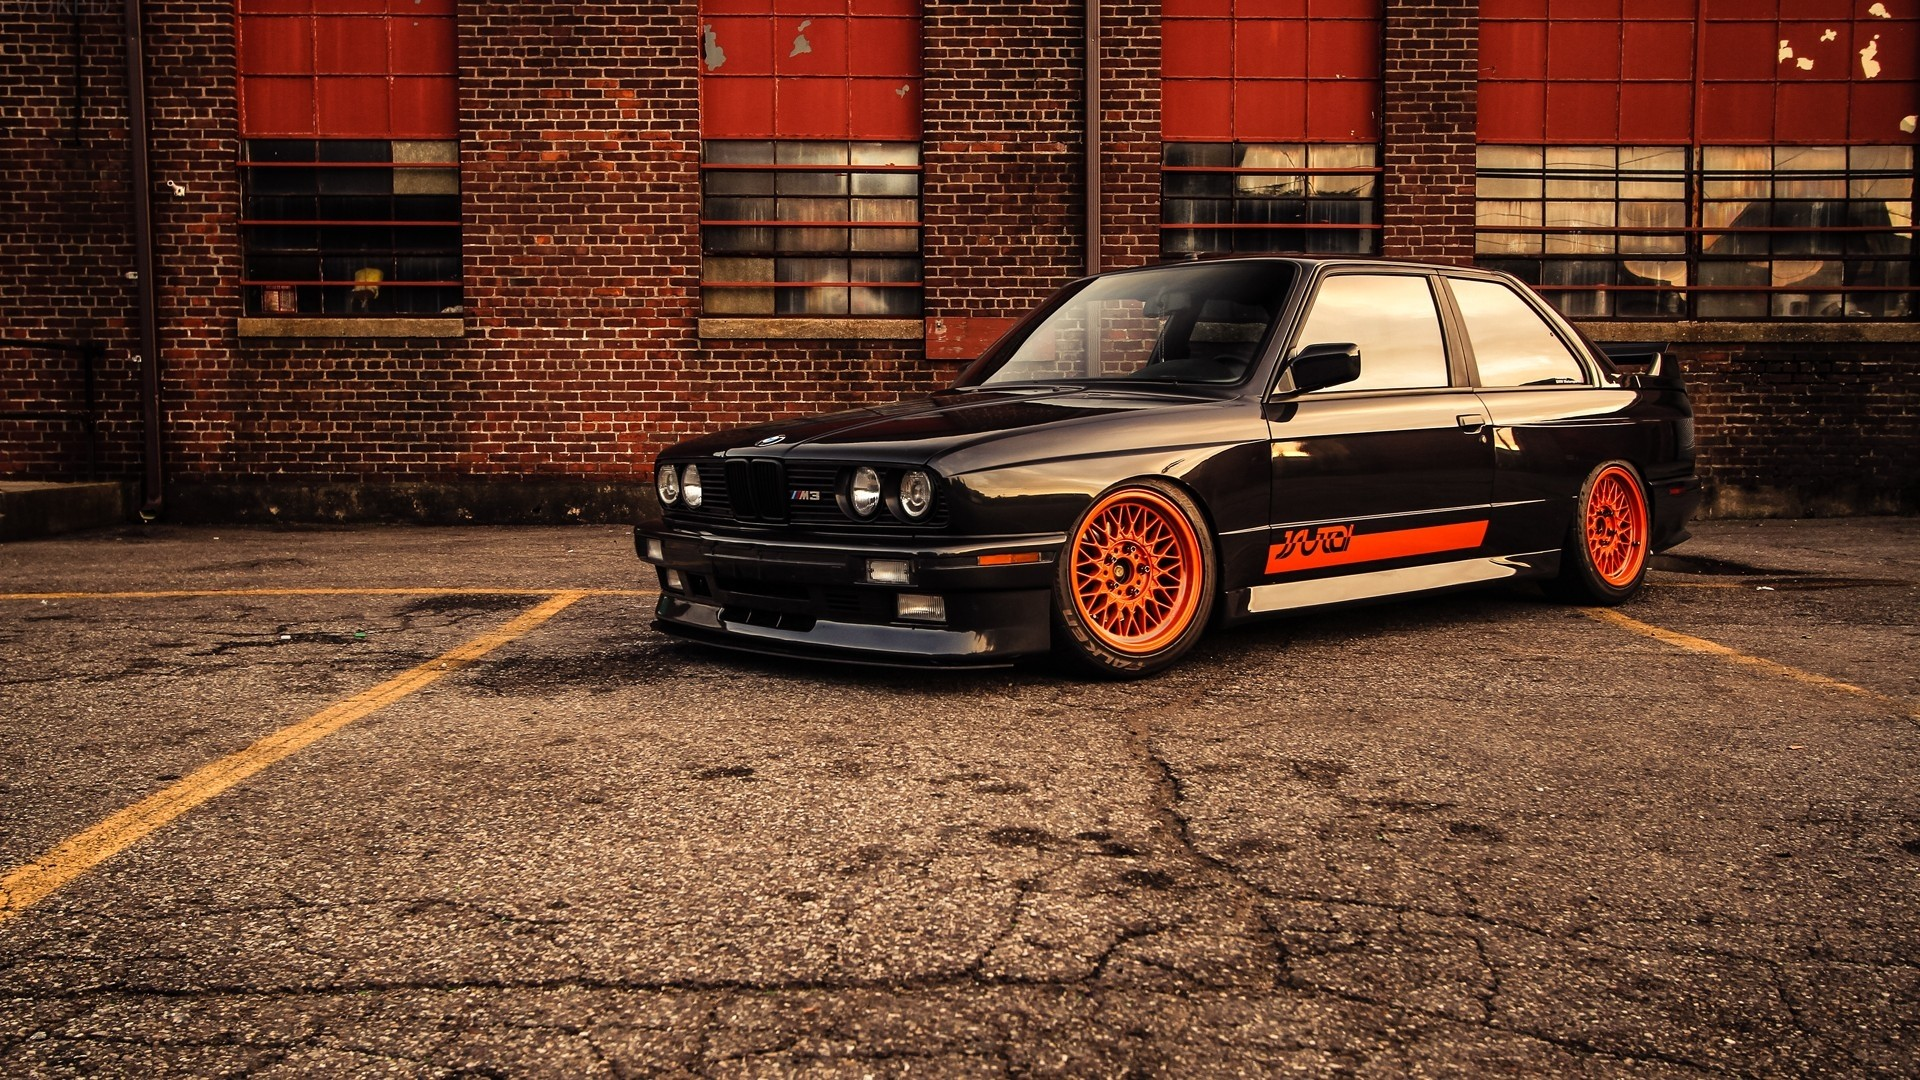 1920x1080 Black orange bmw m3 e30 brick building wide hd wallpaper.